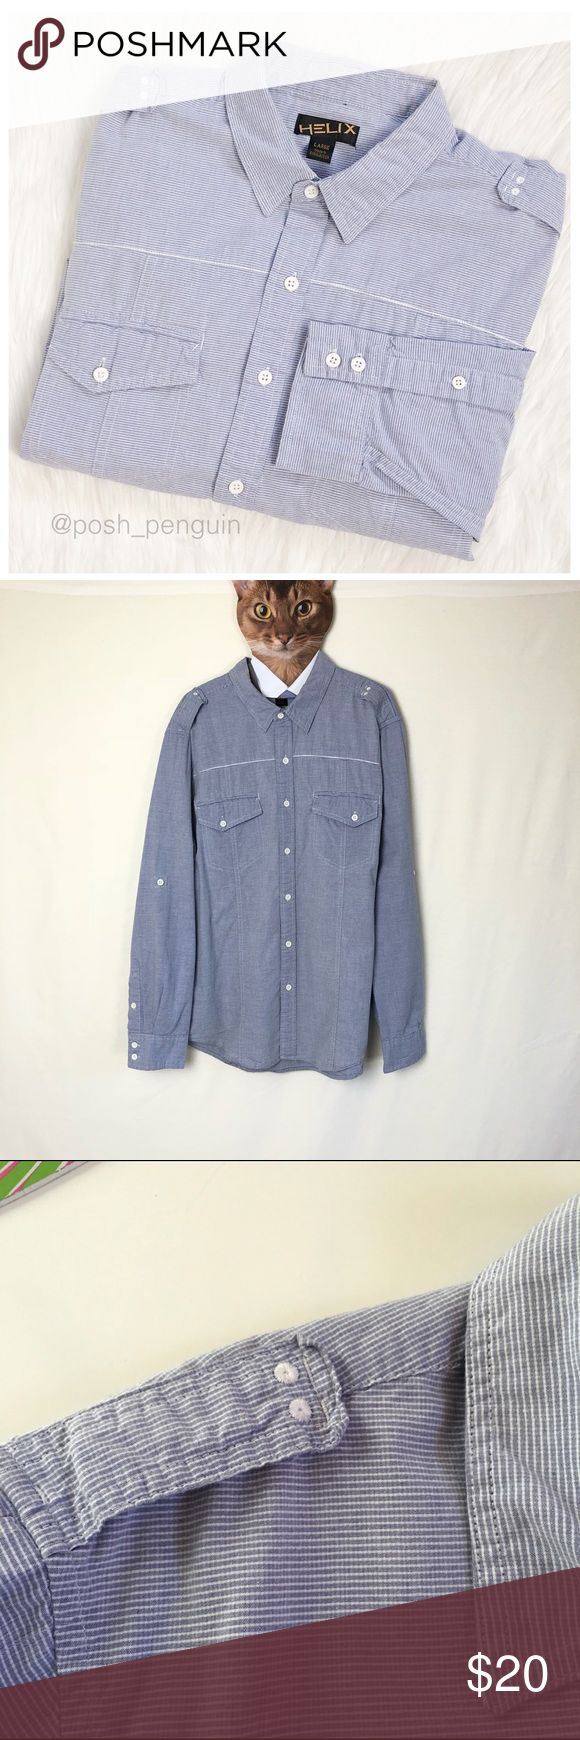 """Blue Seersucker Casual Button Down Shirt Large Blue Seersucker Casual Button Down Shirt. Blue with white accent piping, buttons and shoulder tabs. Works great with dark denim. Excellent used condition. Freshly laundered. Chest 22"""" (flat) Length 29"""". Helix Shirts Casual Button Down Shirts"""